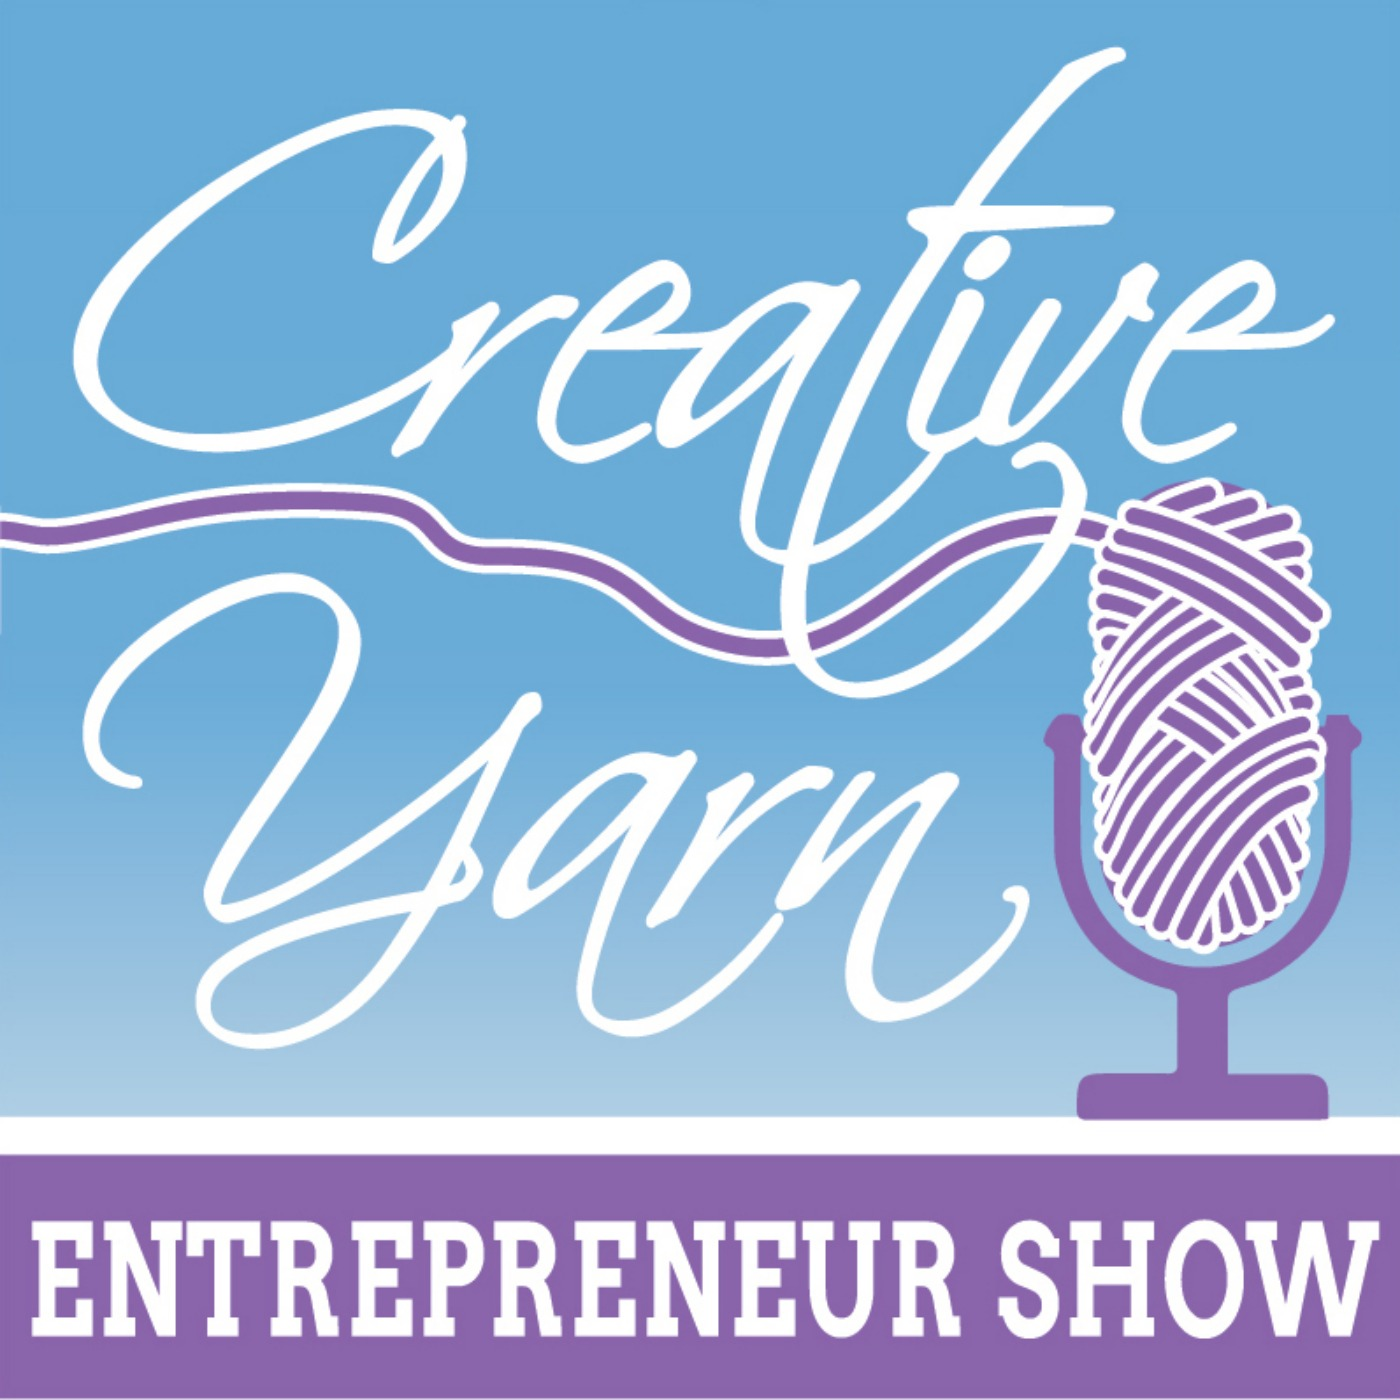 Episode 27: Connecting with Your Mailing List and More with Vashti Braha - The Creative Yarn Entrepreneur Show